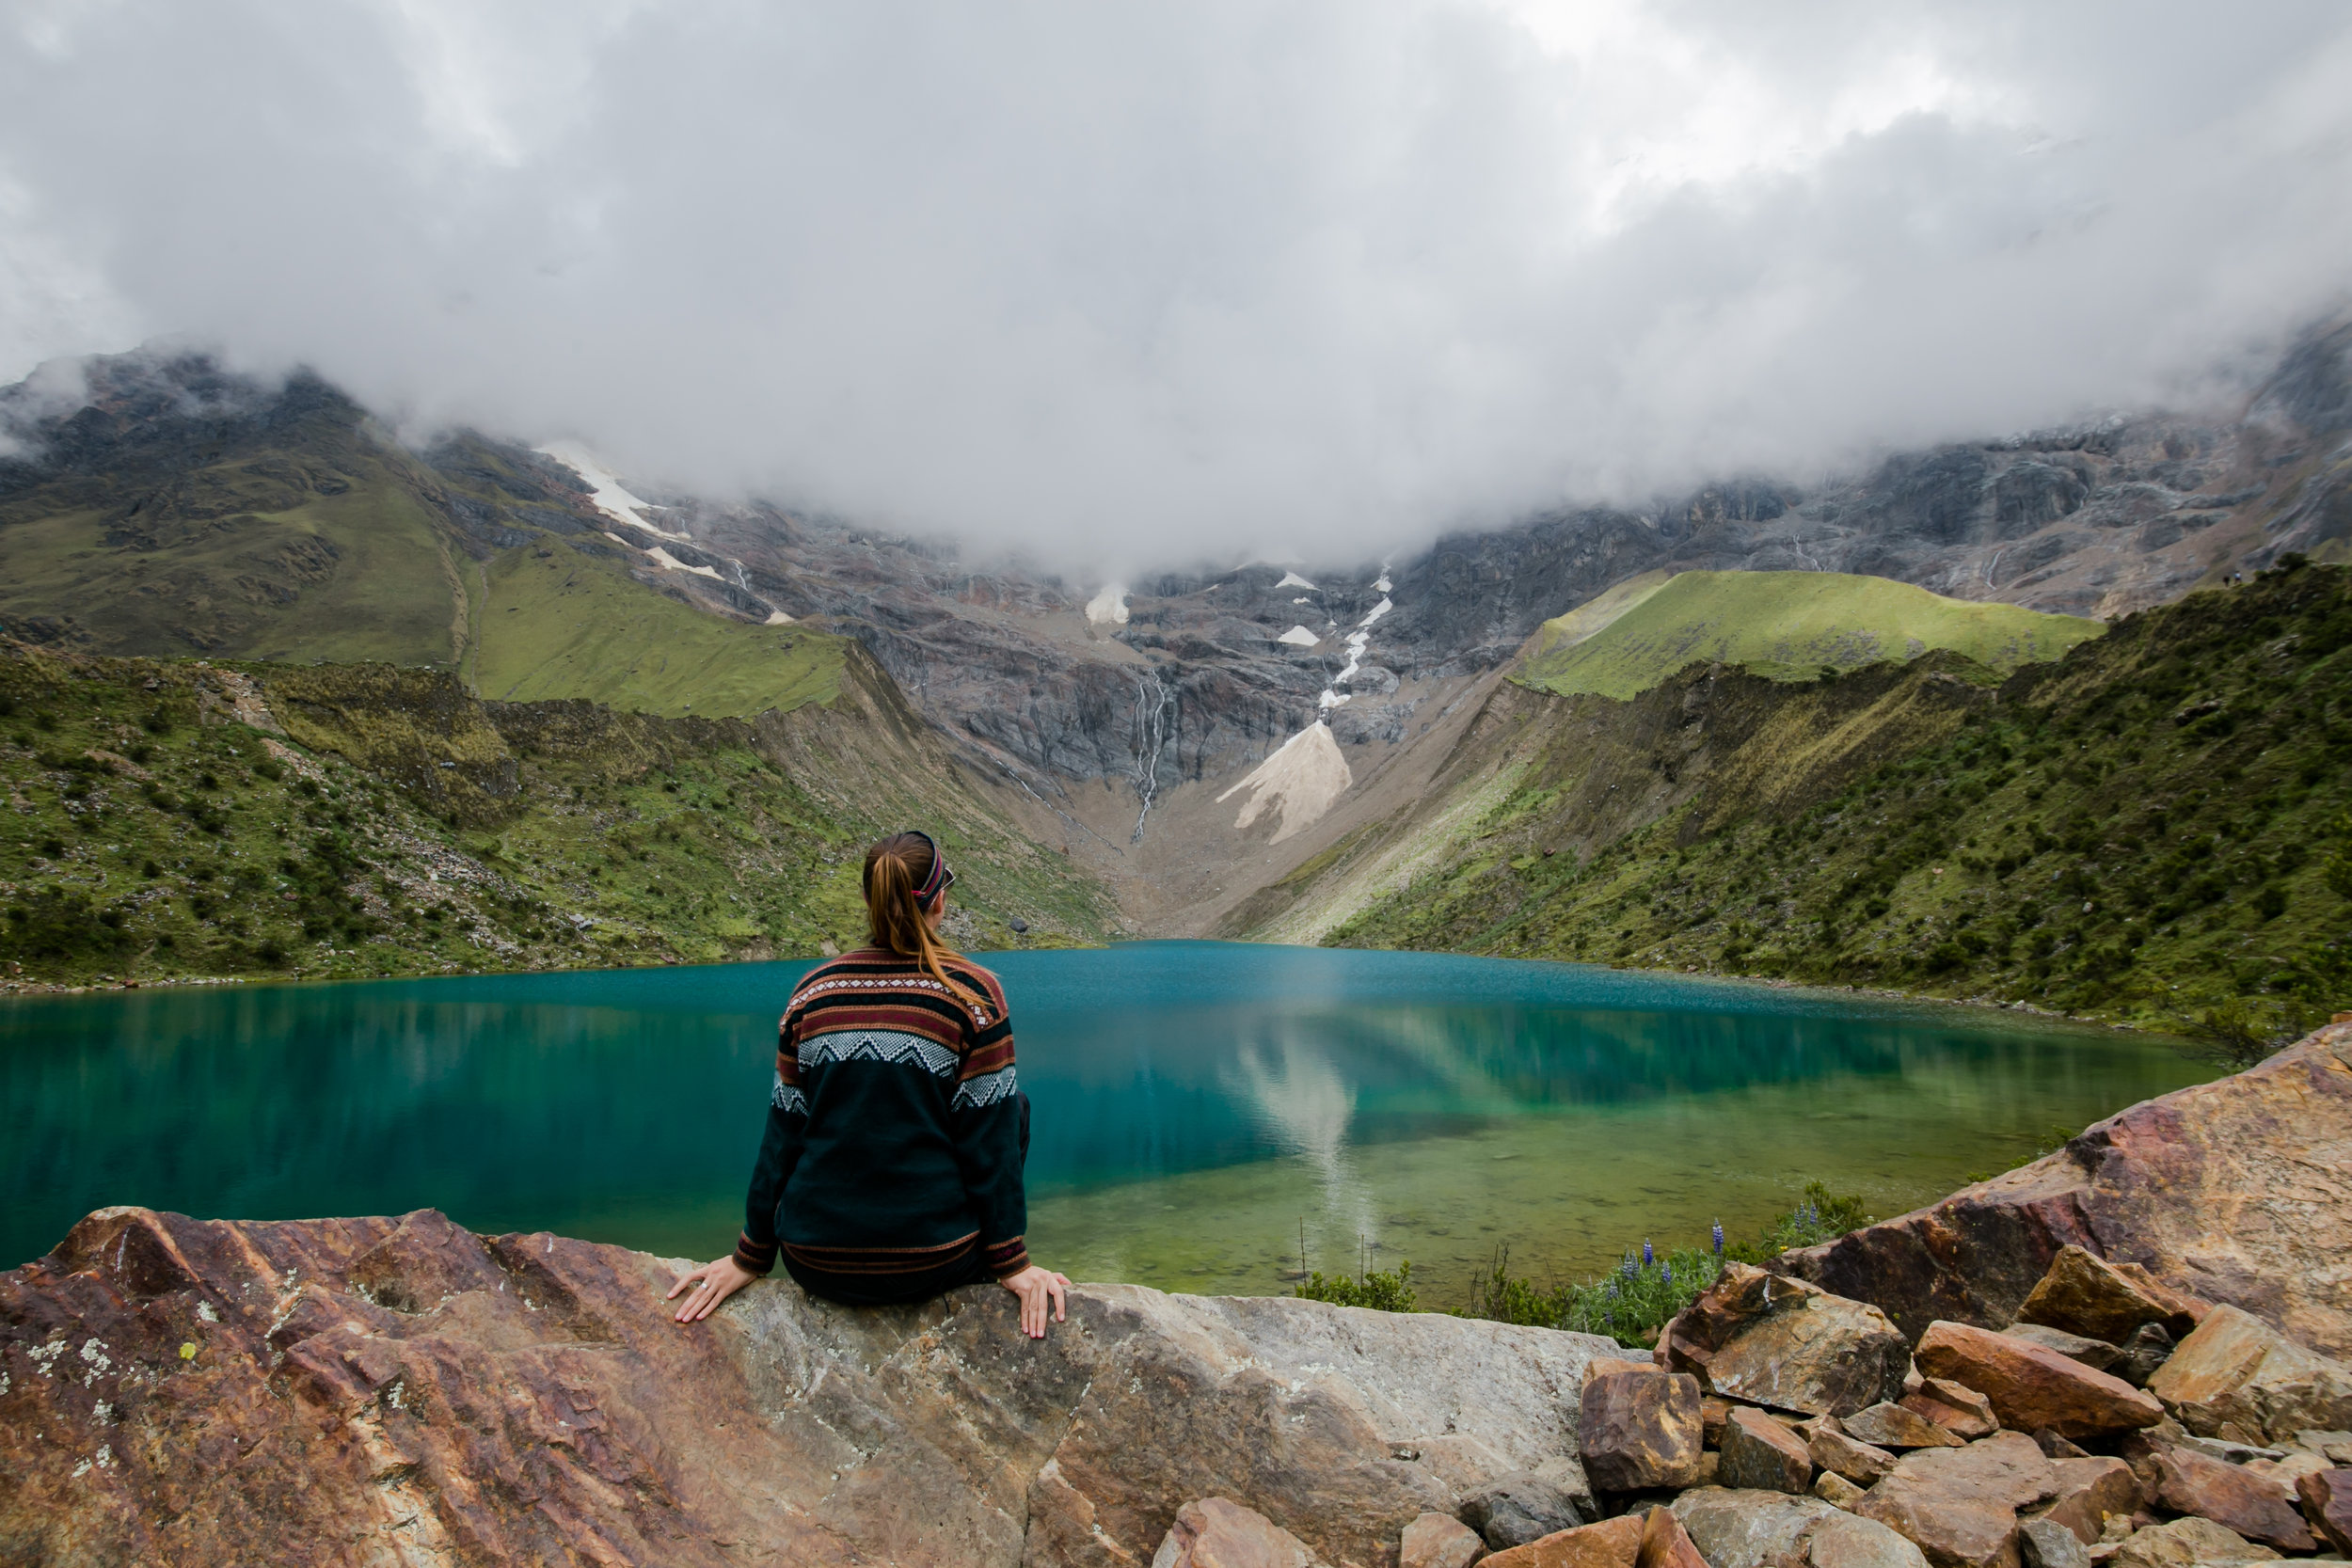 Salcantay - One of the most famous treks in Cusco - the best option to combine the world wonder of Machu Picchu with a marvelous trek where you will go through variety landscapes from snowy mountains to a tropical jungle where you will find a wide range of animals and medicinal plants and flower varieties.